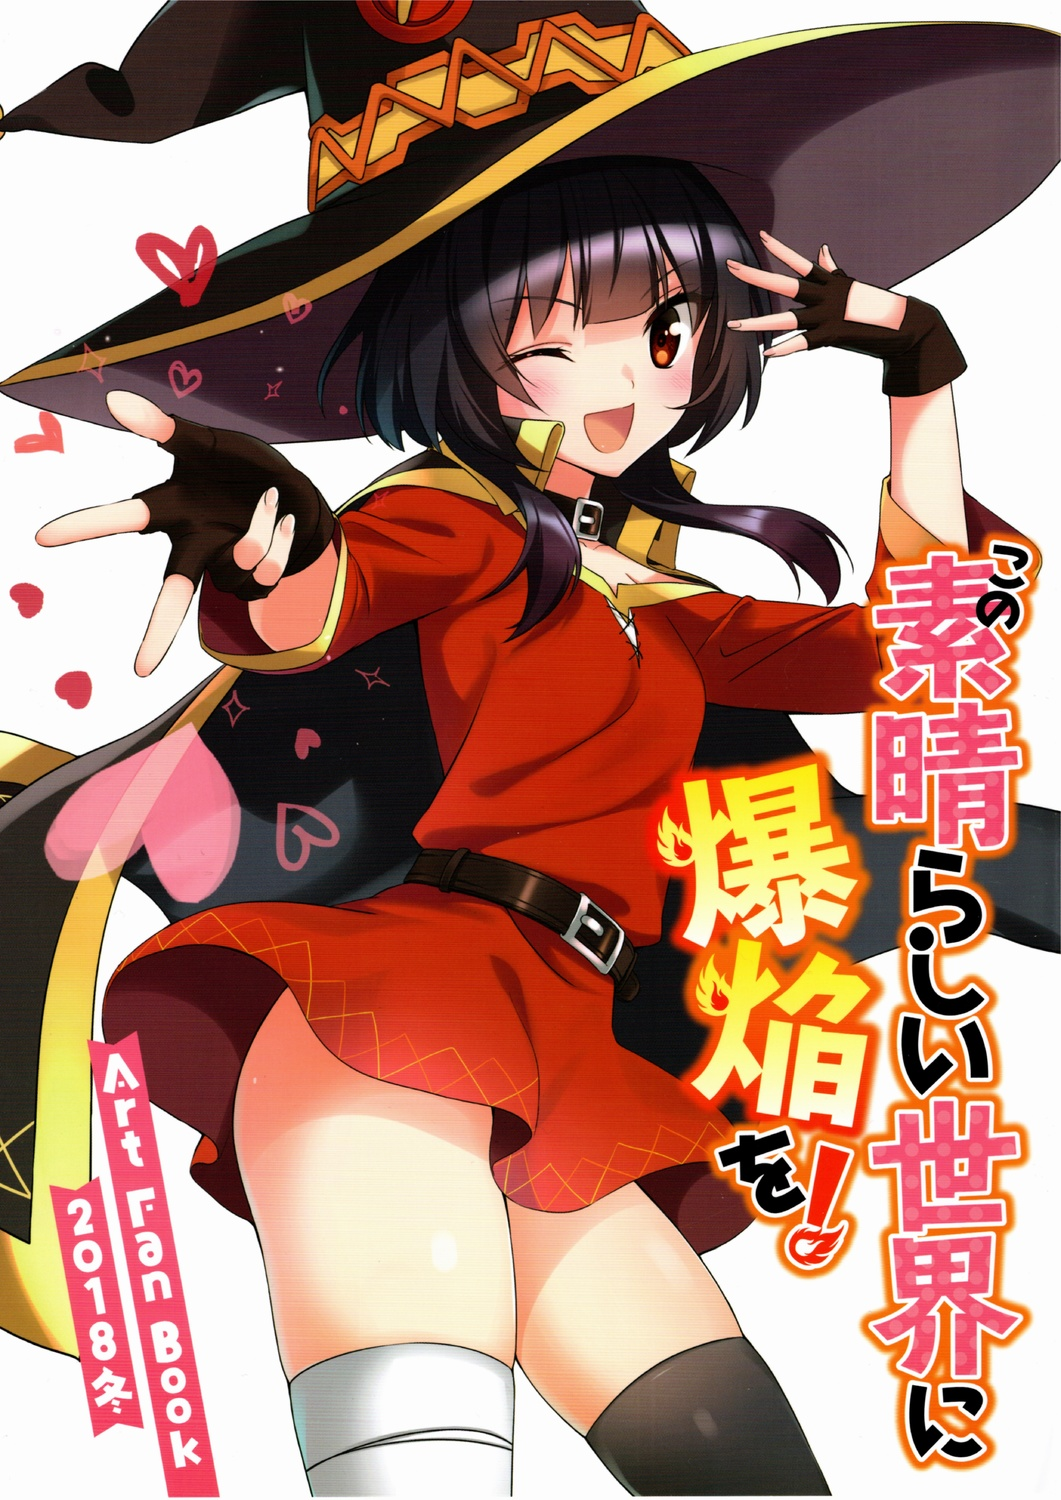 1girl absurdres bandaged_leg bandages belt black_gloves black_hair black_legwear blush breasts cape dress fingerless_gloves gloves hat heart highres kono_subarashii_sekai_ni_shukufuku_wo! looking_at_viewer megumin mishima_kurone official_art one_eye_closed open_mouth red_eyes short_hair single_thighhigh smile solo thighhighs witch_hat